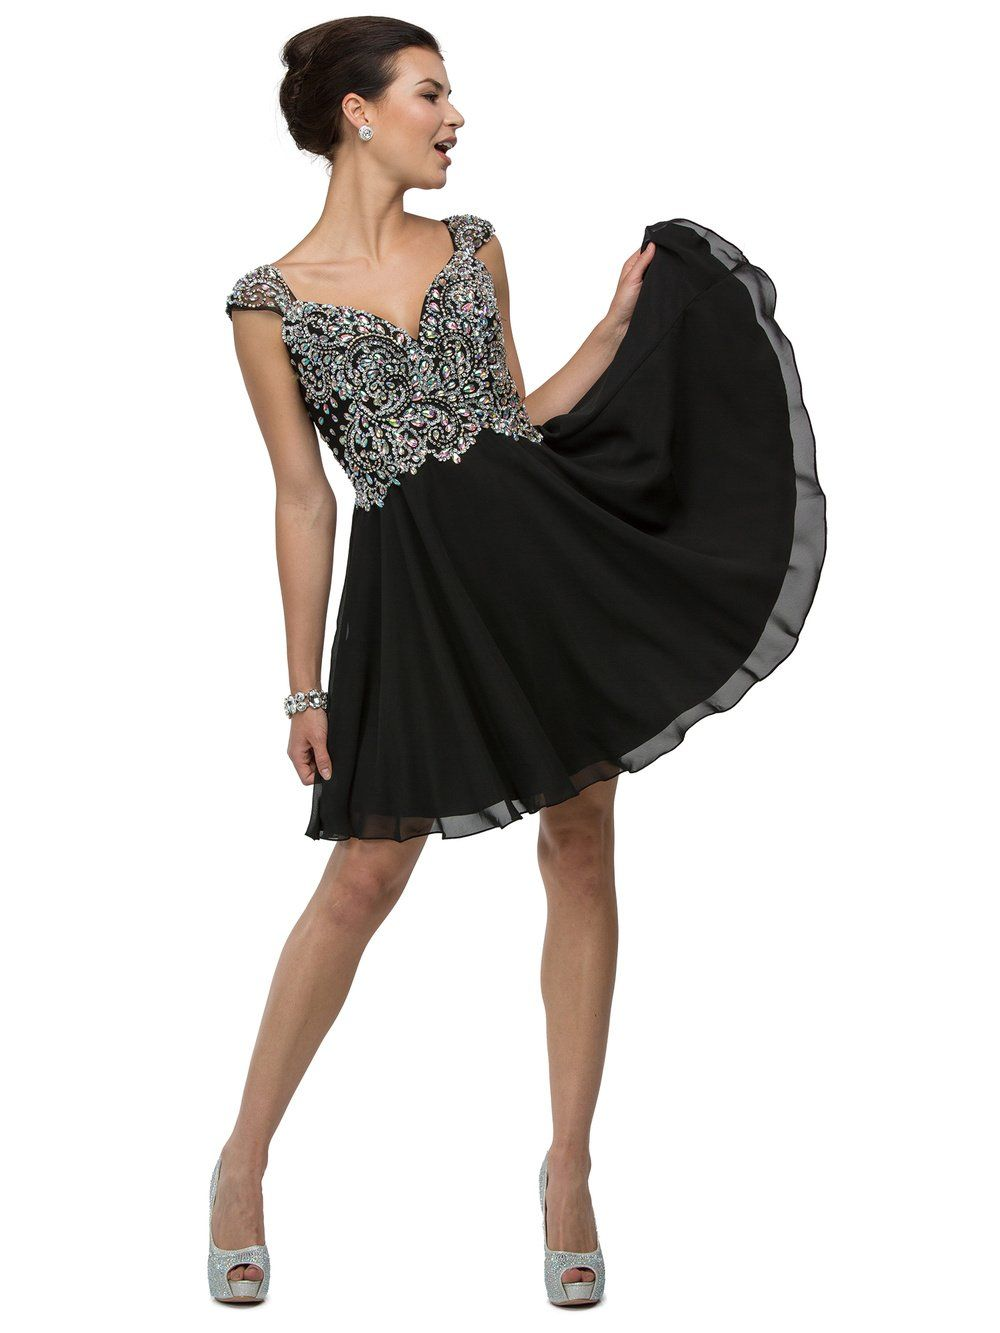 Dama dress style bodice royals and clothes